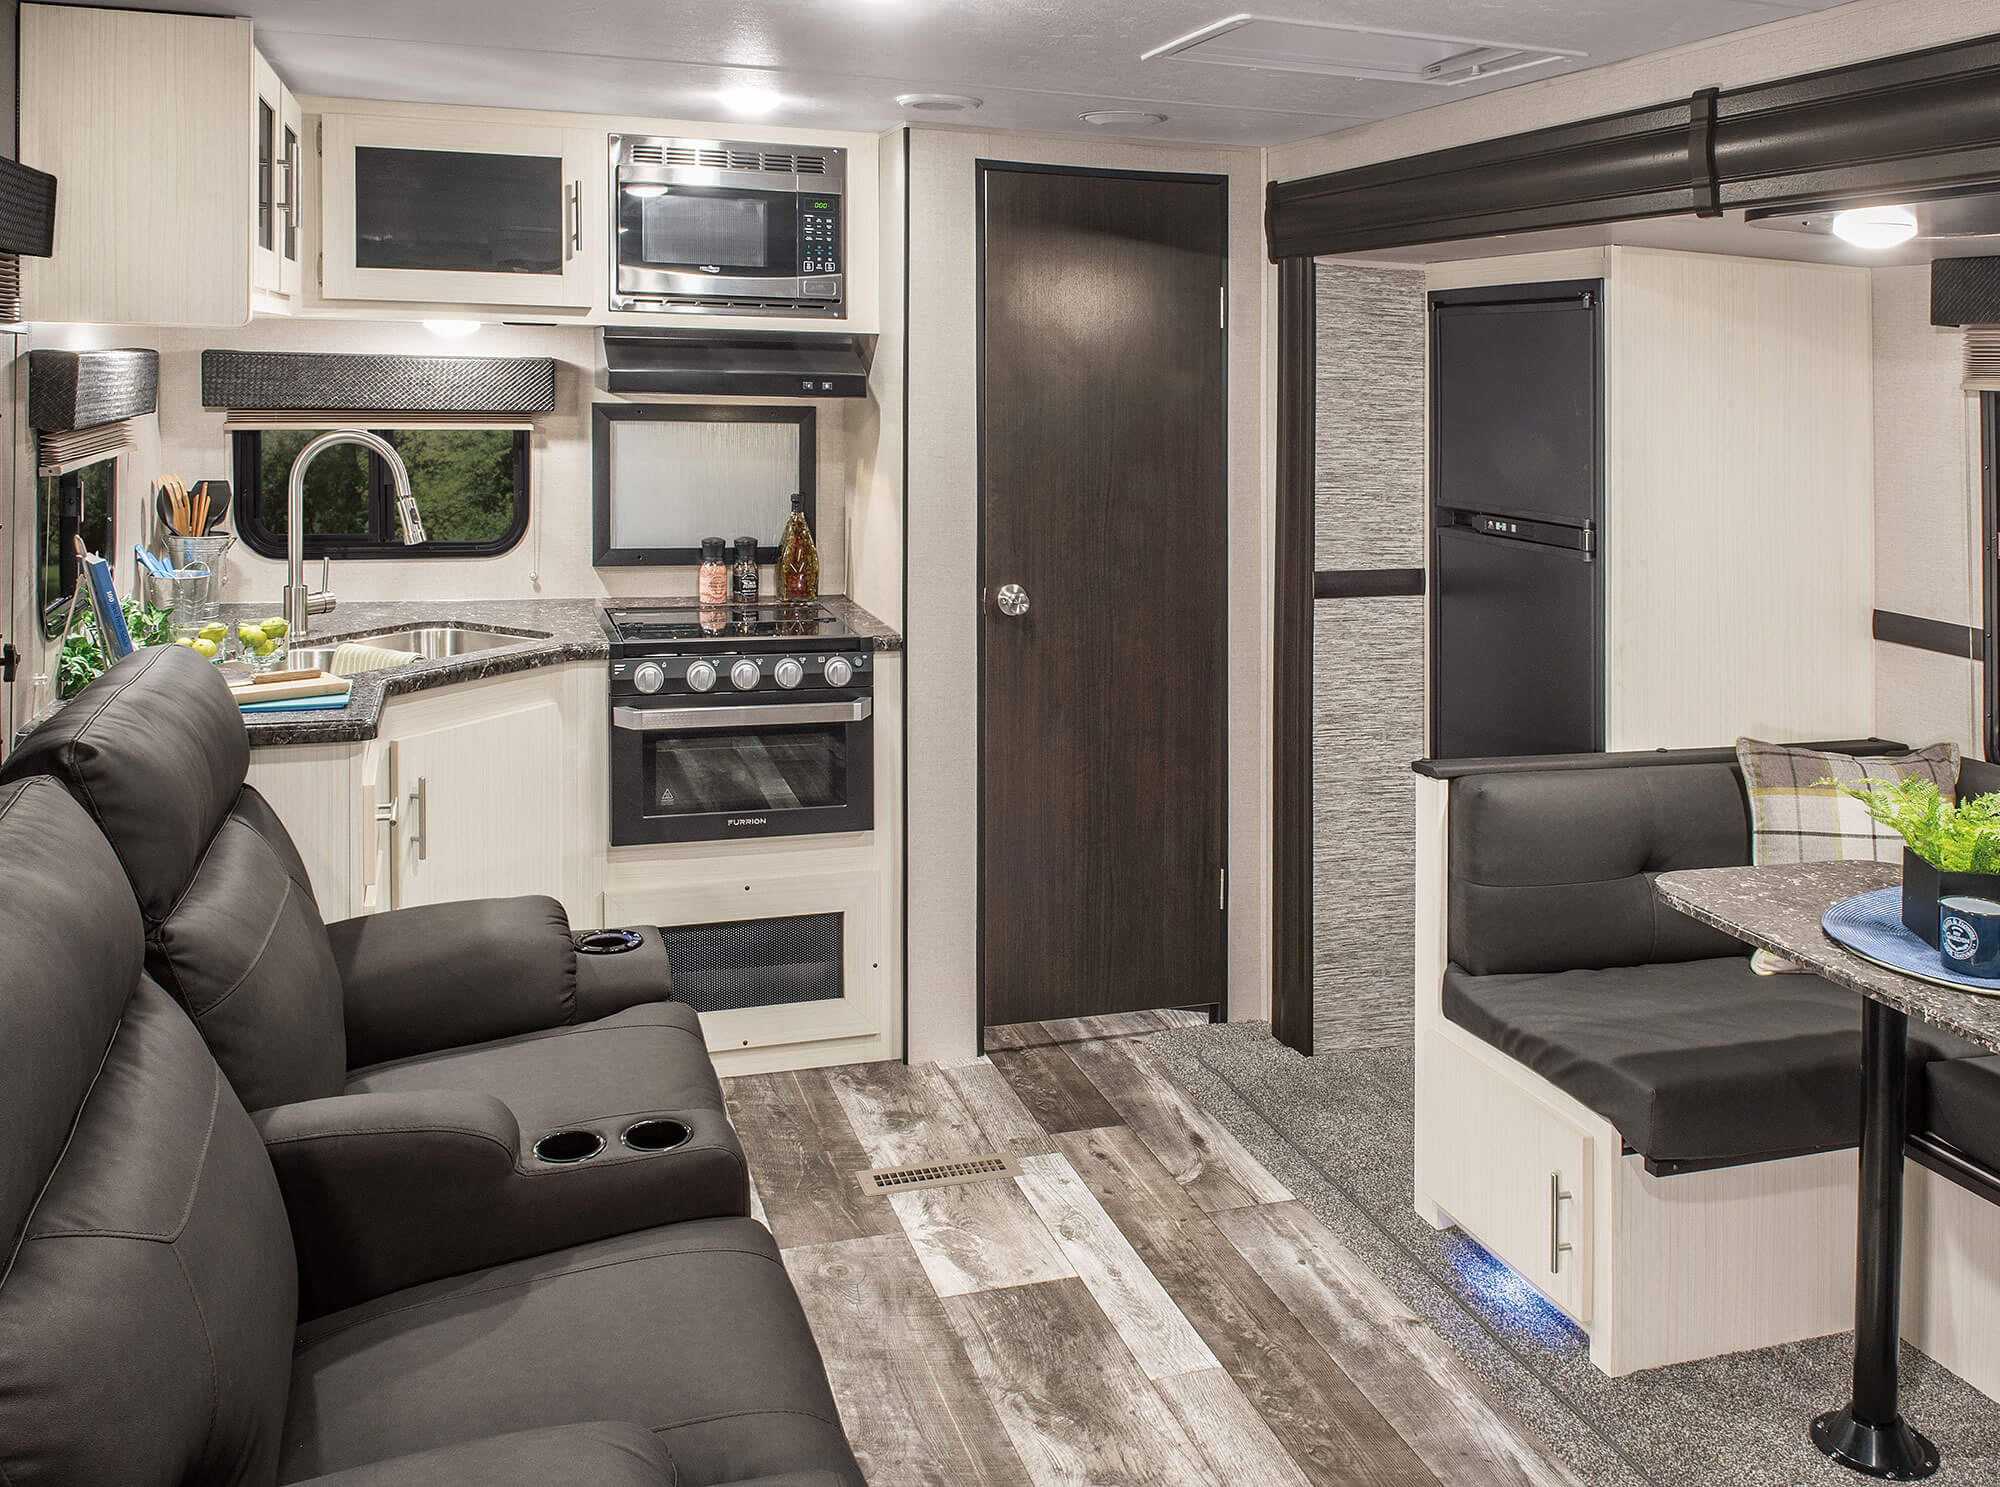 2019 Best In Show RV News Says Its The Venture Stratus